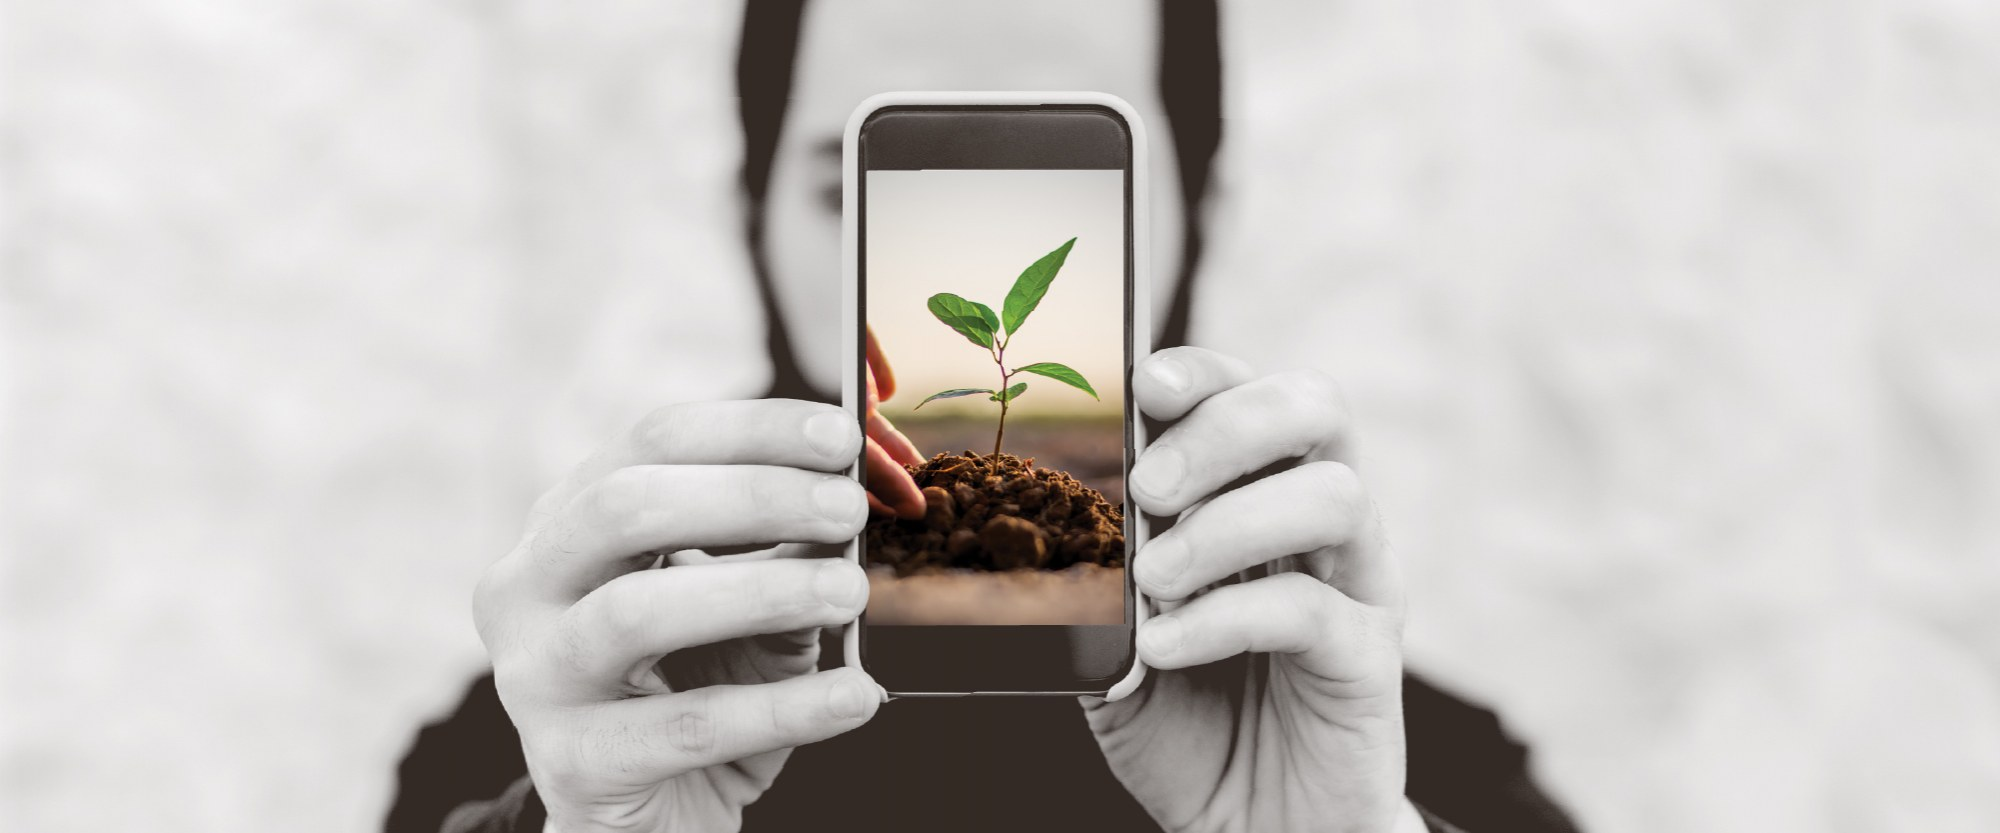 hands holding a mobile phone with an image of a green plant bursting out of the soil